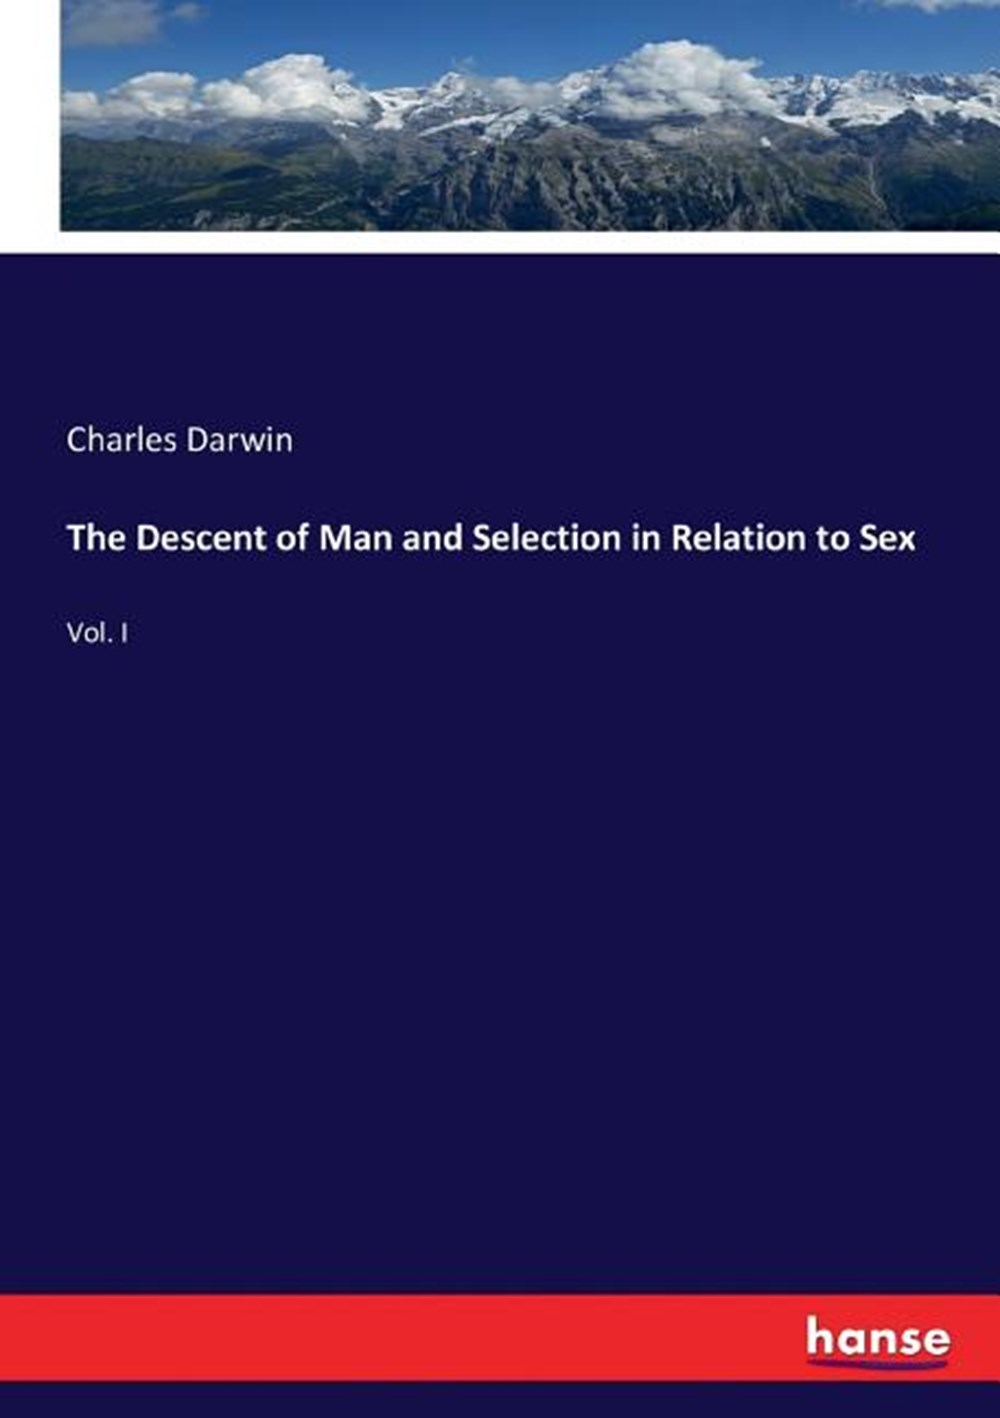 Descent of Man and Selection in Relation to Sex Vol. I